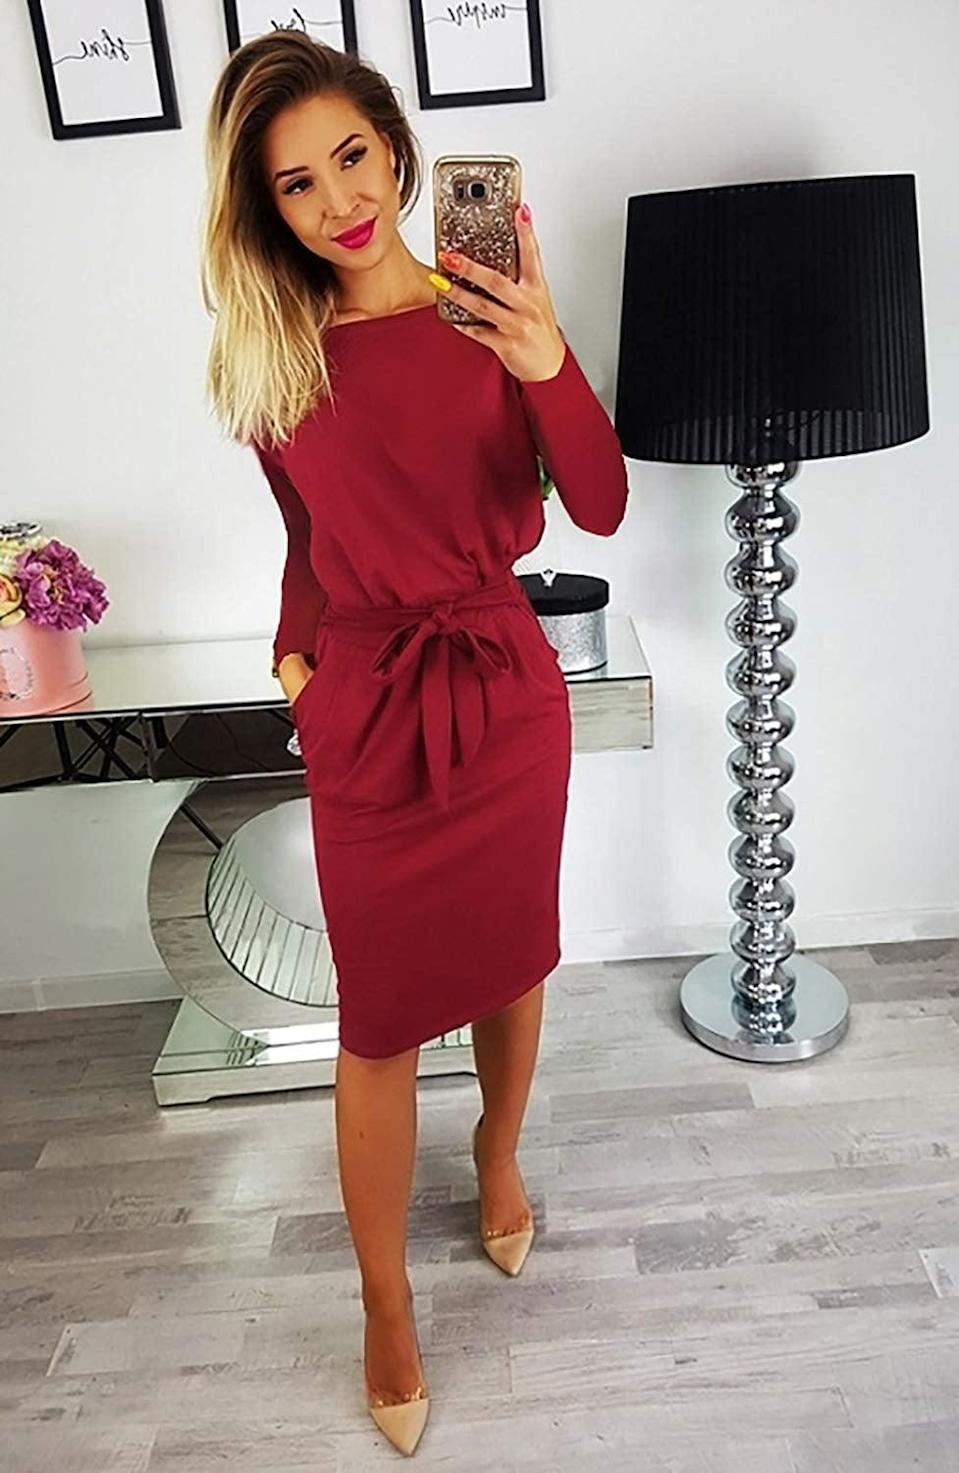 """<p>We love this <a href=""""https://www.popsugar.com/buy/PrettyGarden-Belted-Dress-Pockets-512875?p_name=PrettyGarden%20Belted%20Dress%20With%20Pockets&retailer=amazon.com&pid=512875&price=21&evar1=fab%3Aus&evar9=46859993&evar98=https%3A%2F%2Fwww.popsugar.com%2Ffashion%2Fphoto-gallery%2F46859993%2Fimage%2F46860954%2FPrettyGarden-Belted-Dress-With-Pockets&list1=shopping%2Camazon%2Choliday%2Cwinter%20fashion%2Choliday%20fashion%2C50%20under%20%2450%2Cgifts%20for%20women%2Caffordable%20shopping&prop13=mobile&pdata=1"""" rel=""""nofollow noopener"""" class=""""link rapid-noclick-resp"""" target=""""_blank"""" data-ylk=""""slk:PrettyGarden Belted Dress With Pockets"""">PrettyGarden Belted Dress With Pockets</a> ($21) for any occasion.</p>"""